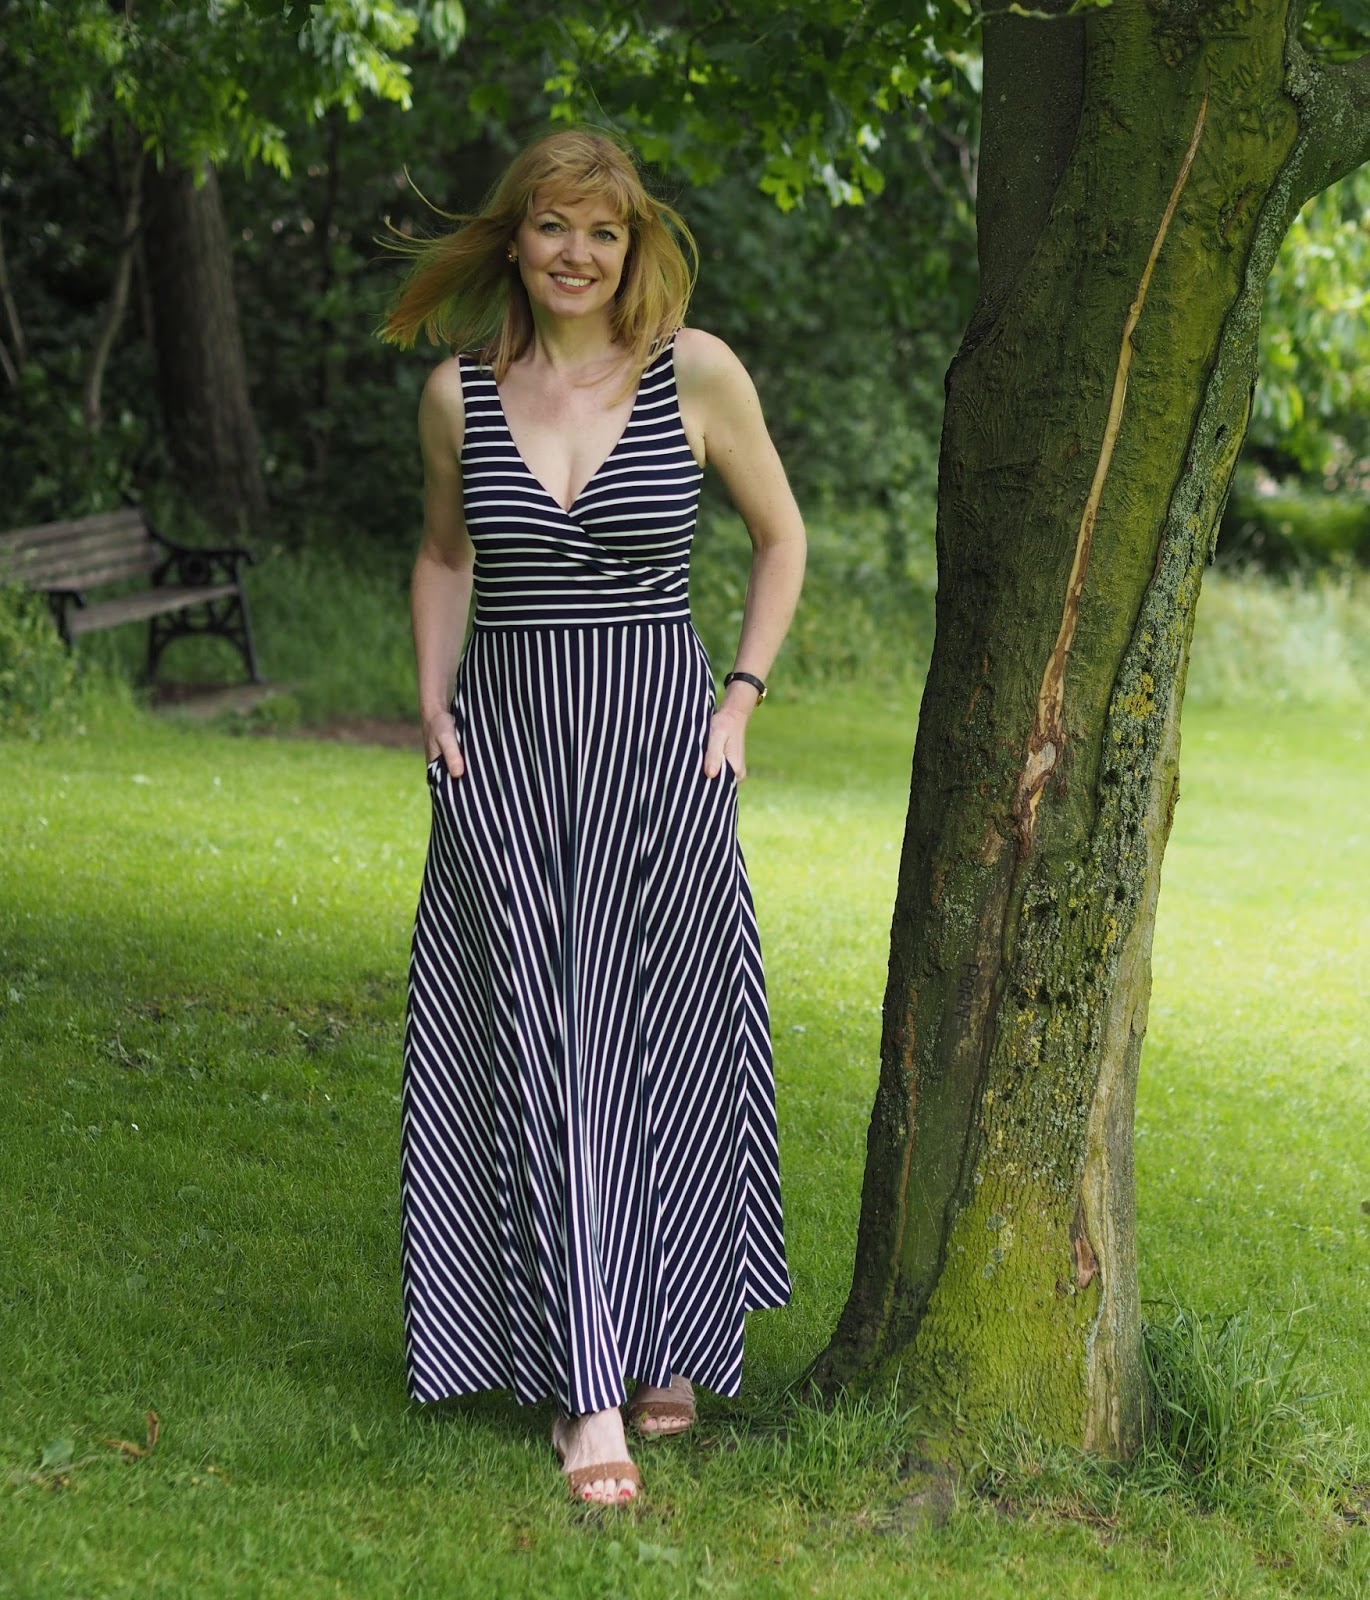 Boden striped maxi dress, star jewellery, red floral scarf, Over 40